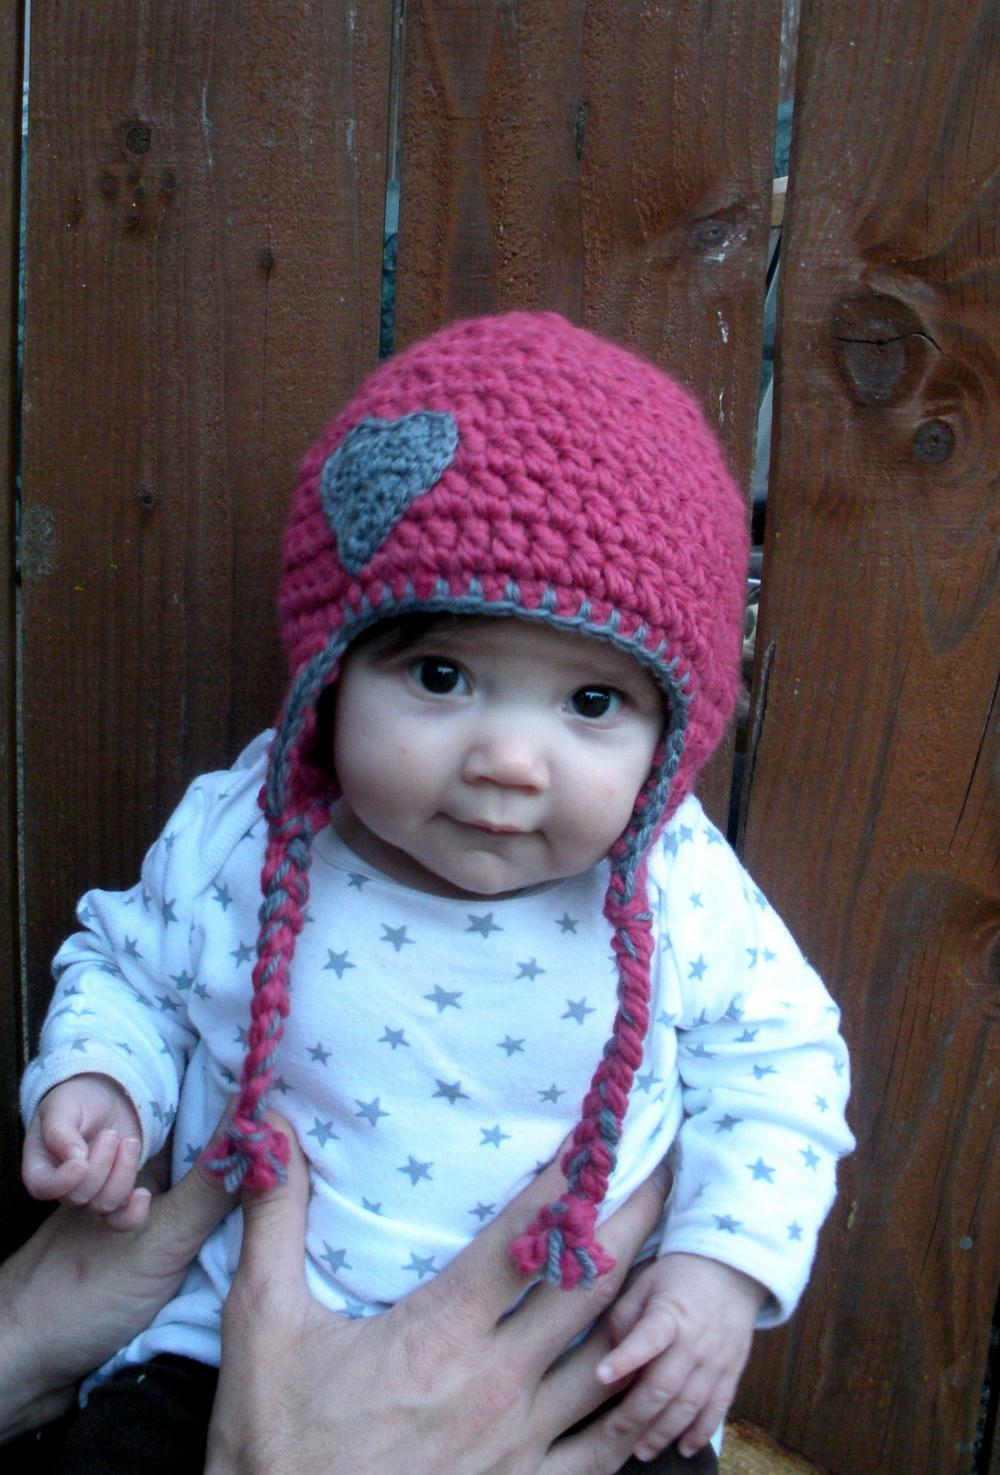 Chunky Earflap Hat Crochet Pattern Free : Chunky Baby Earflap Hat In Pink And Grey With Crocheted ...